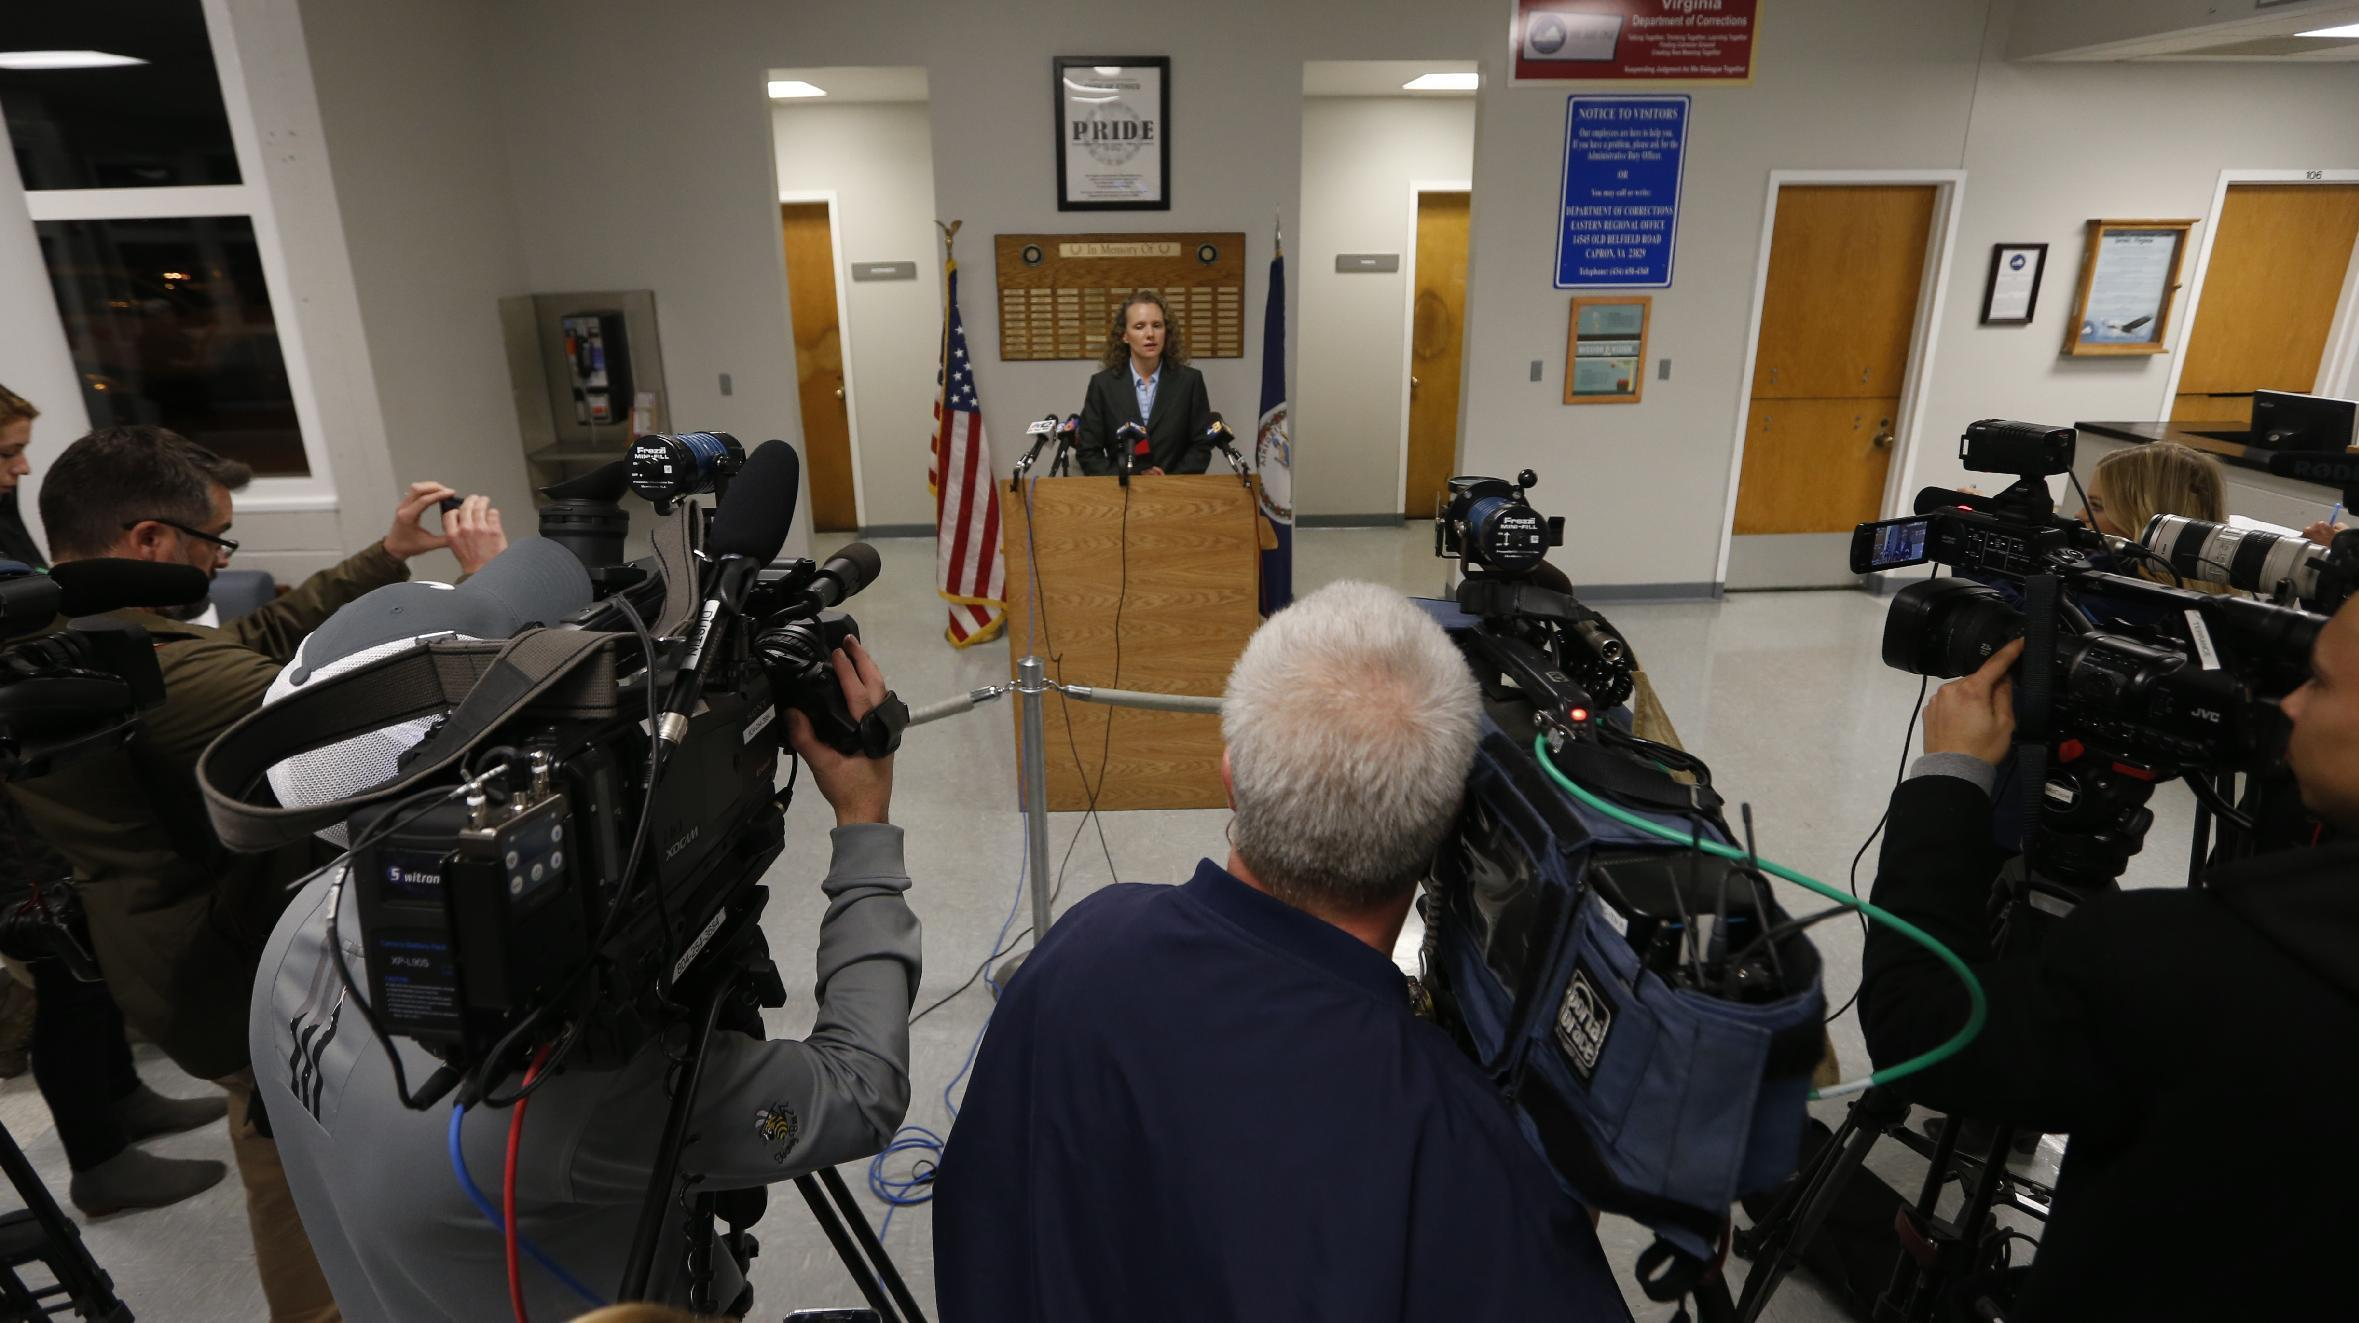 Virginia Department of Corrections spokesperson, Lisa Kinney, at podium, announces the execution of Ricky Gray at the Greensville Correctional Center in Jarratt, Va., Wednesday, Jan. 18, 2017. Gray who was convicted of killing a couple and their two young daughters in their Virginia home on New Year's Day 2006 was put to death Wednesday. (AP Photo/Steve Helber)